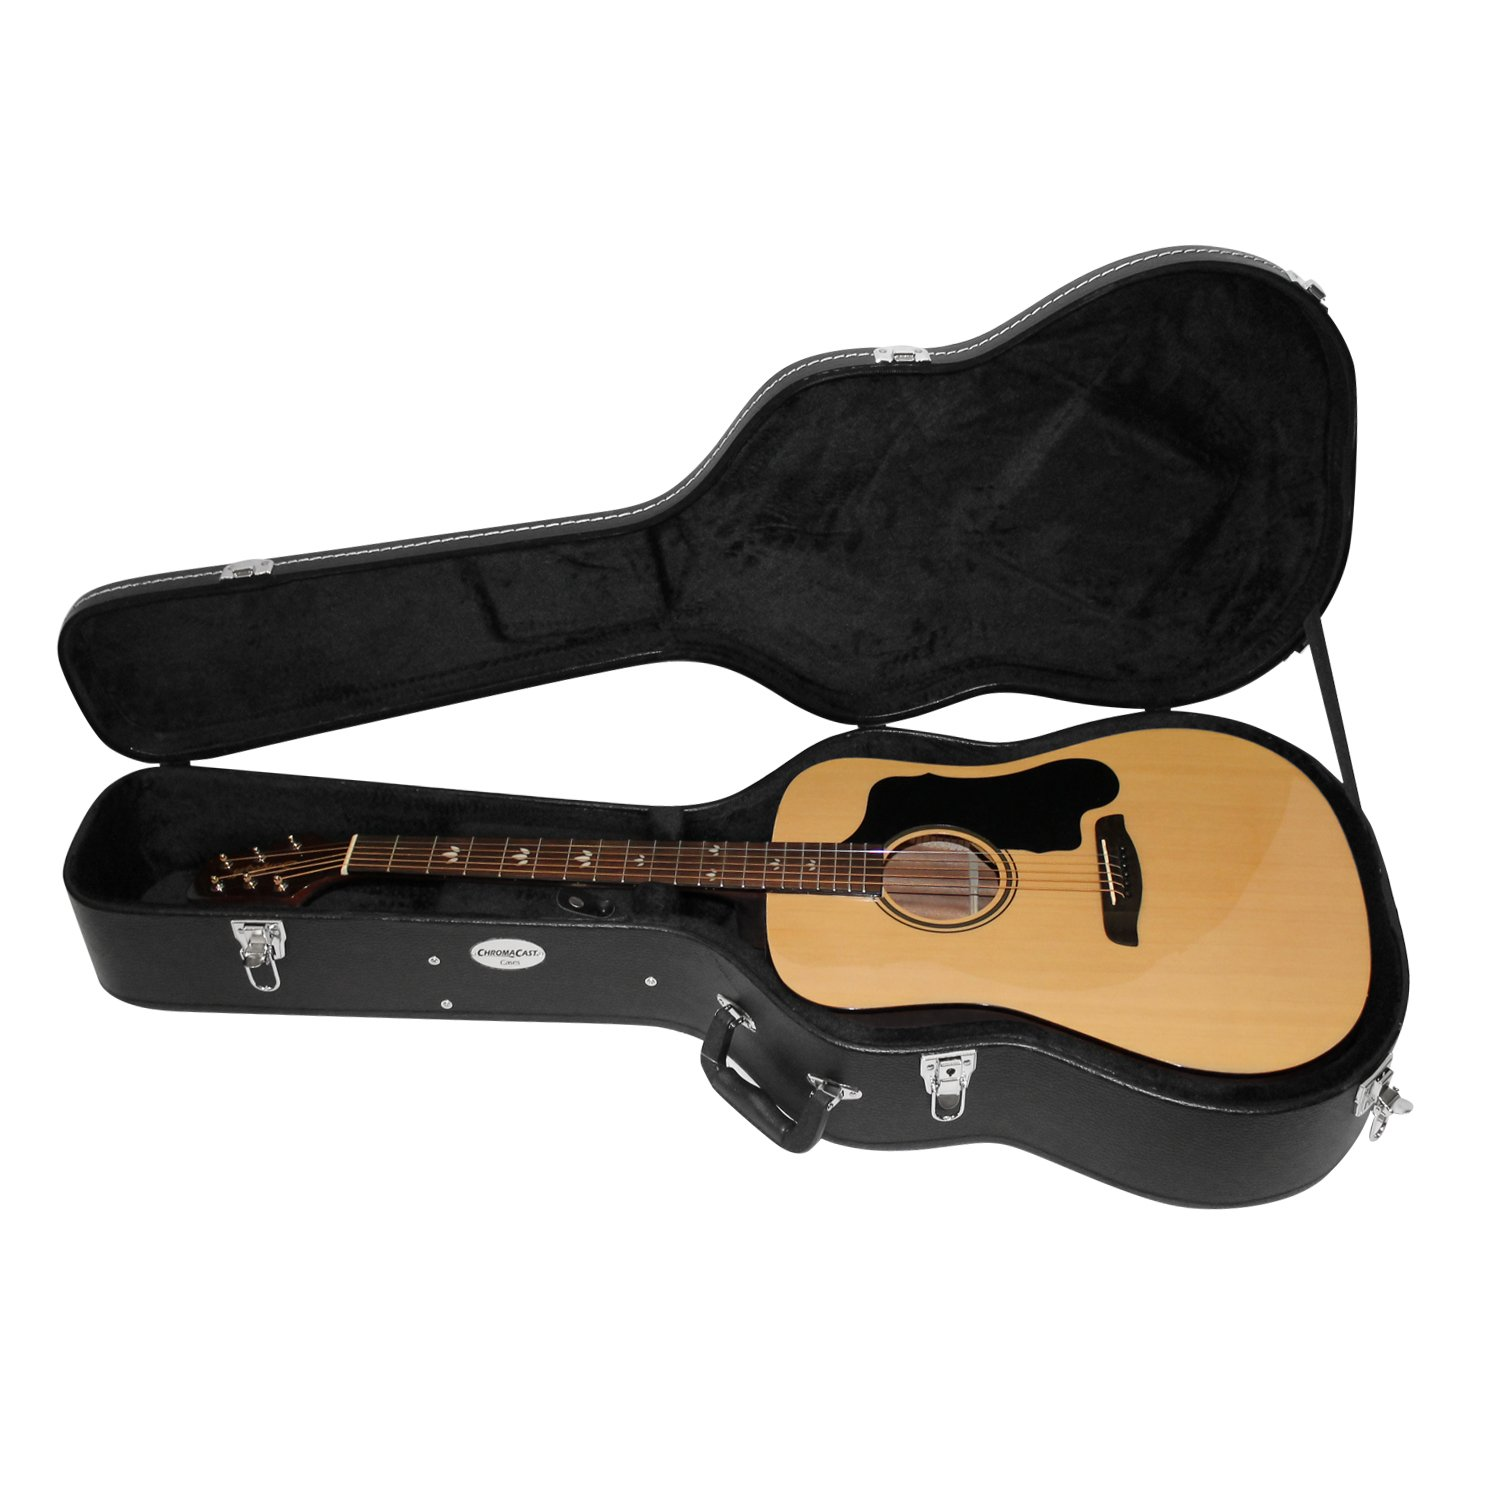 chromacast cc adhc kit 3 acoustic dreadnought hard